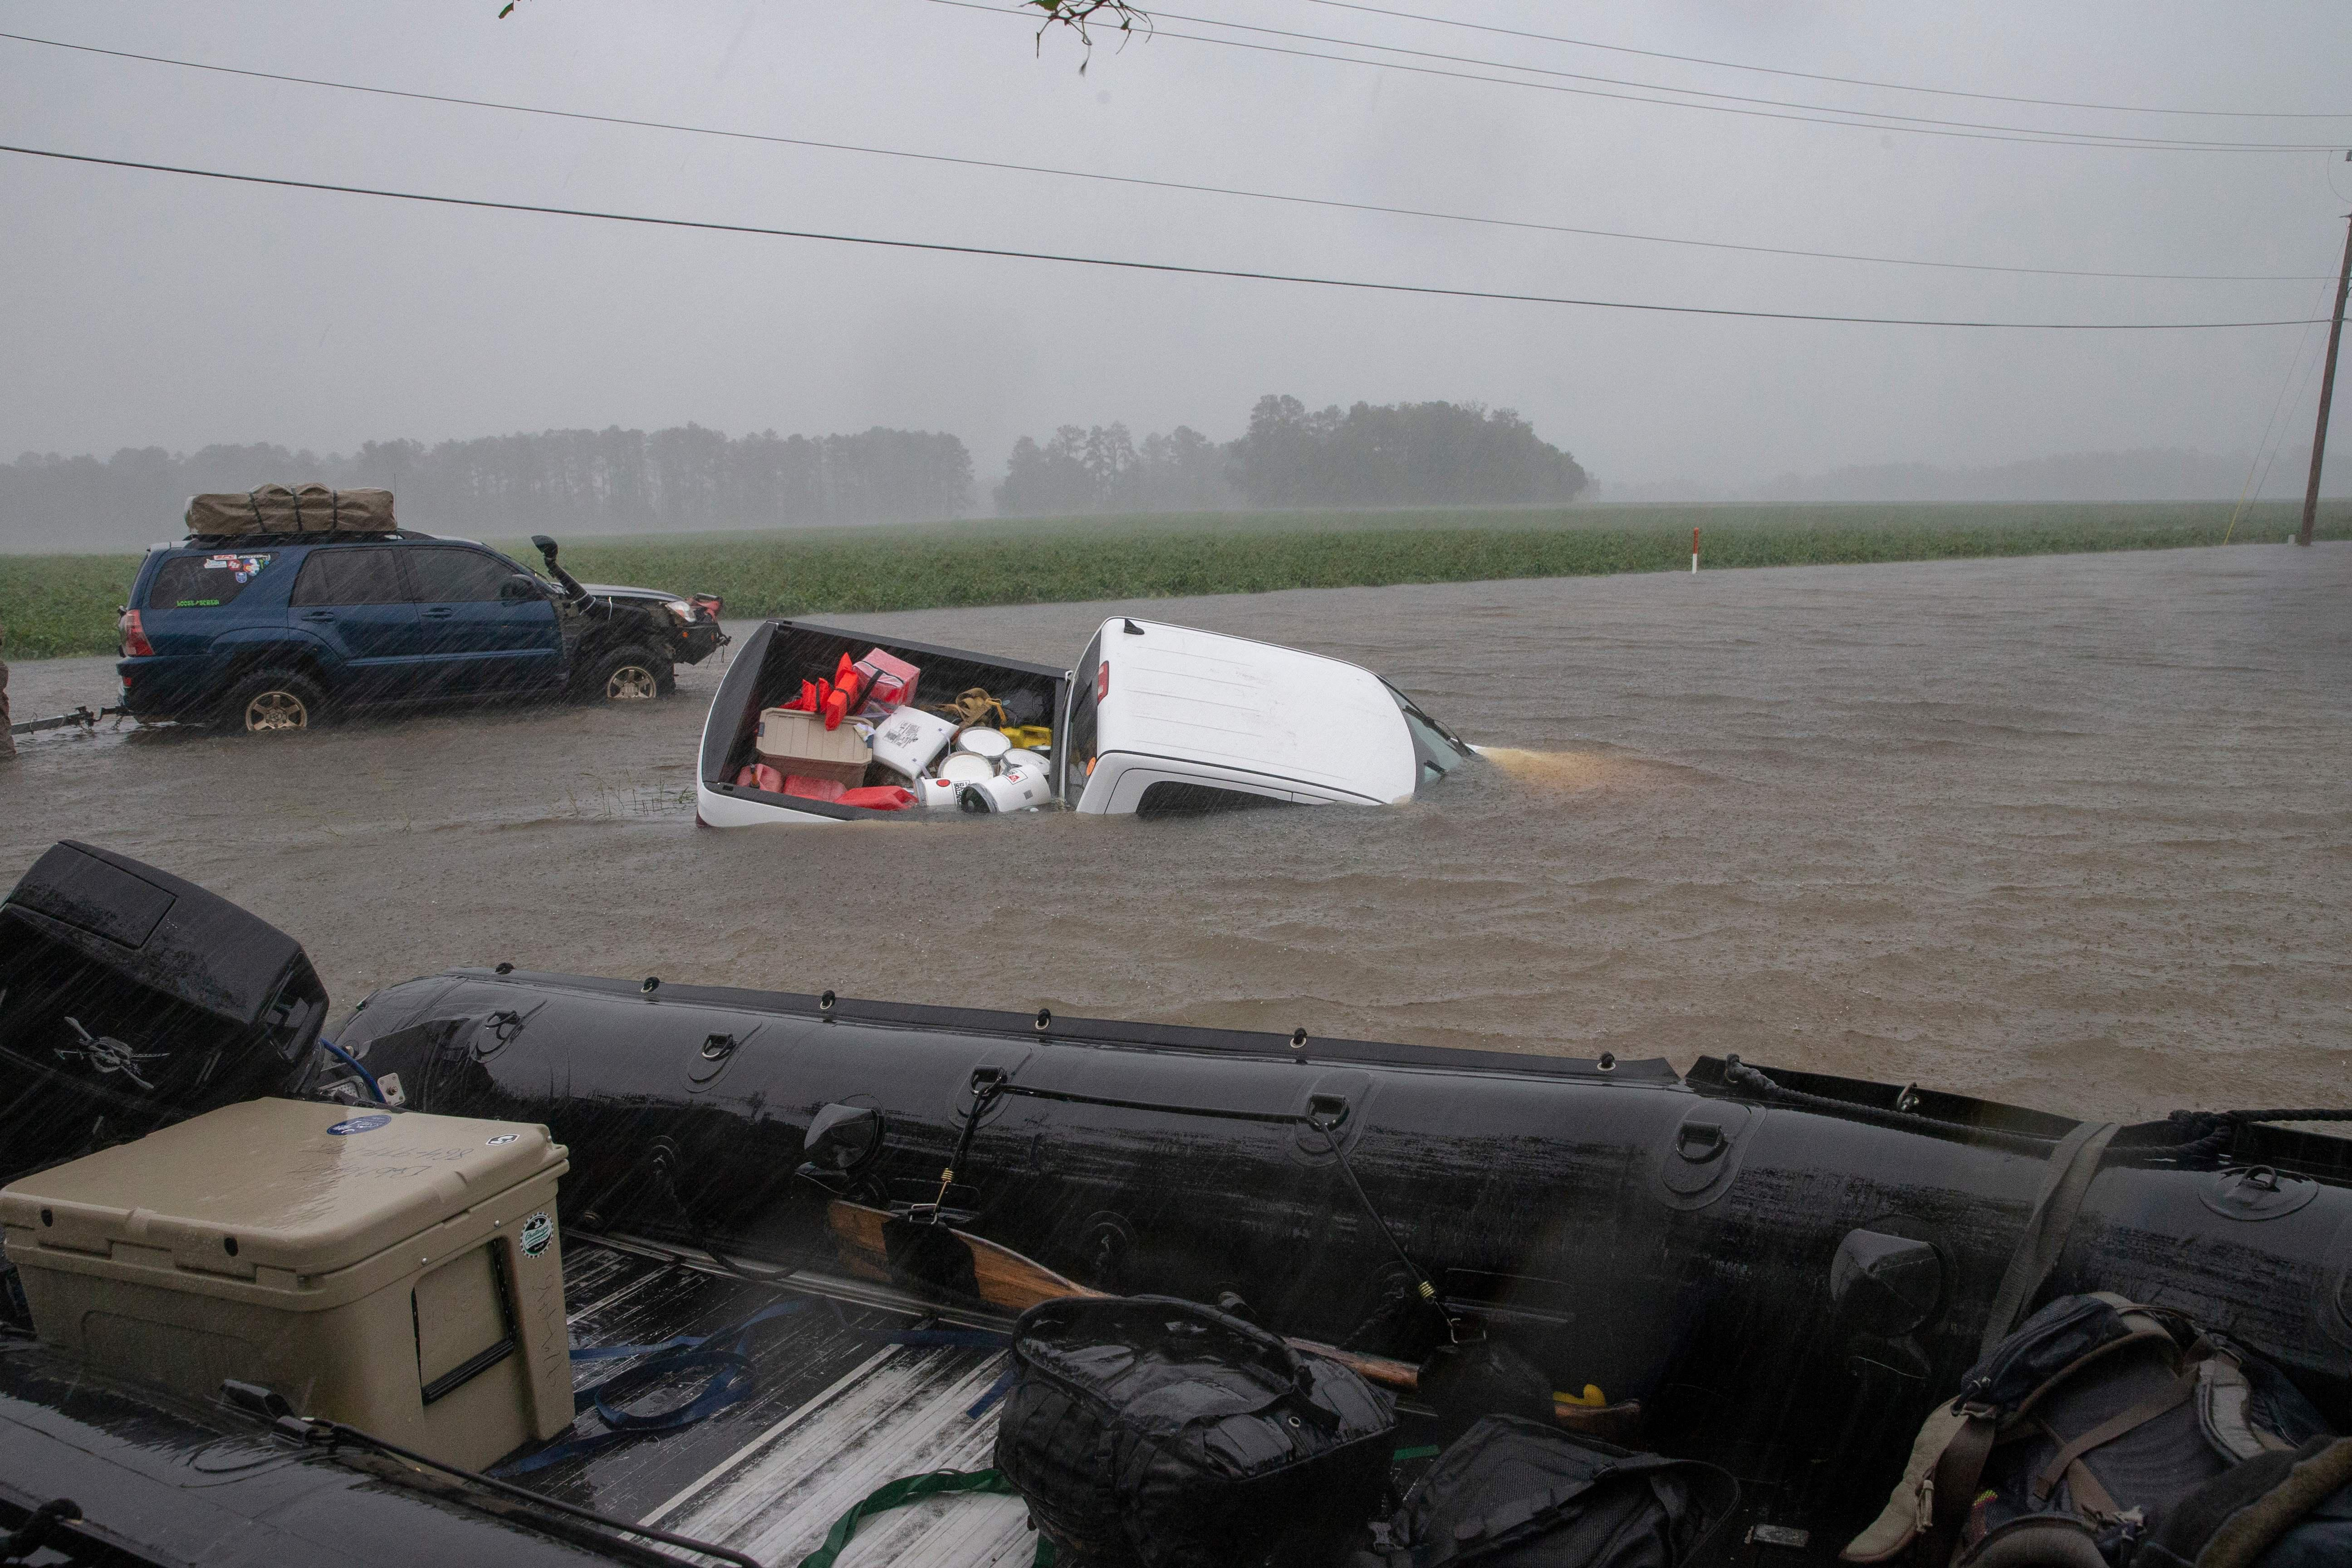 A pickup truck is seen submerged in floodwater in Lumberton, North Carolina, on September 15, 2018 in the wake of Hurricane Florence.